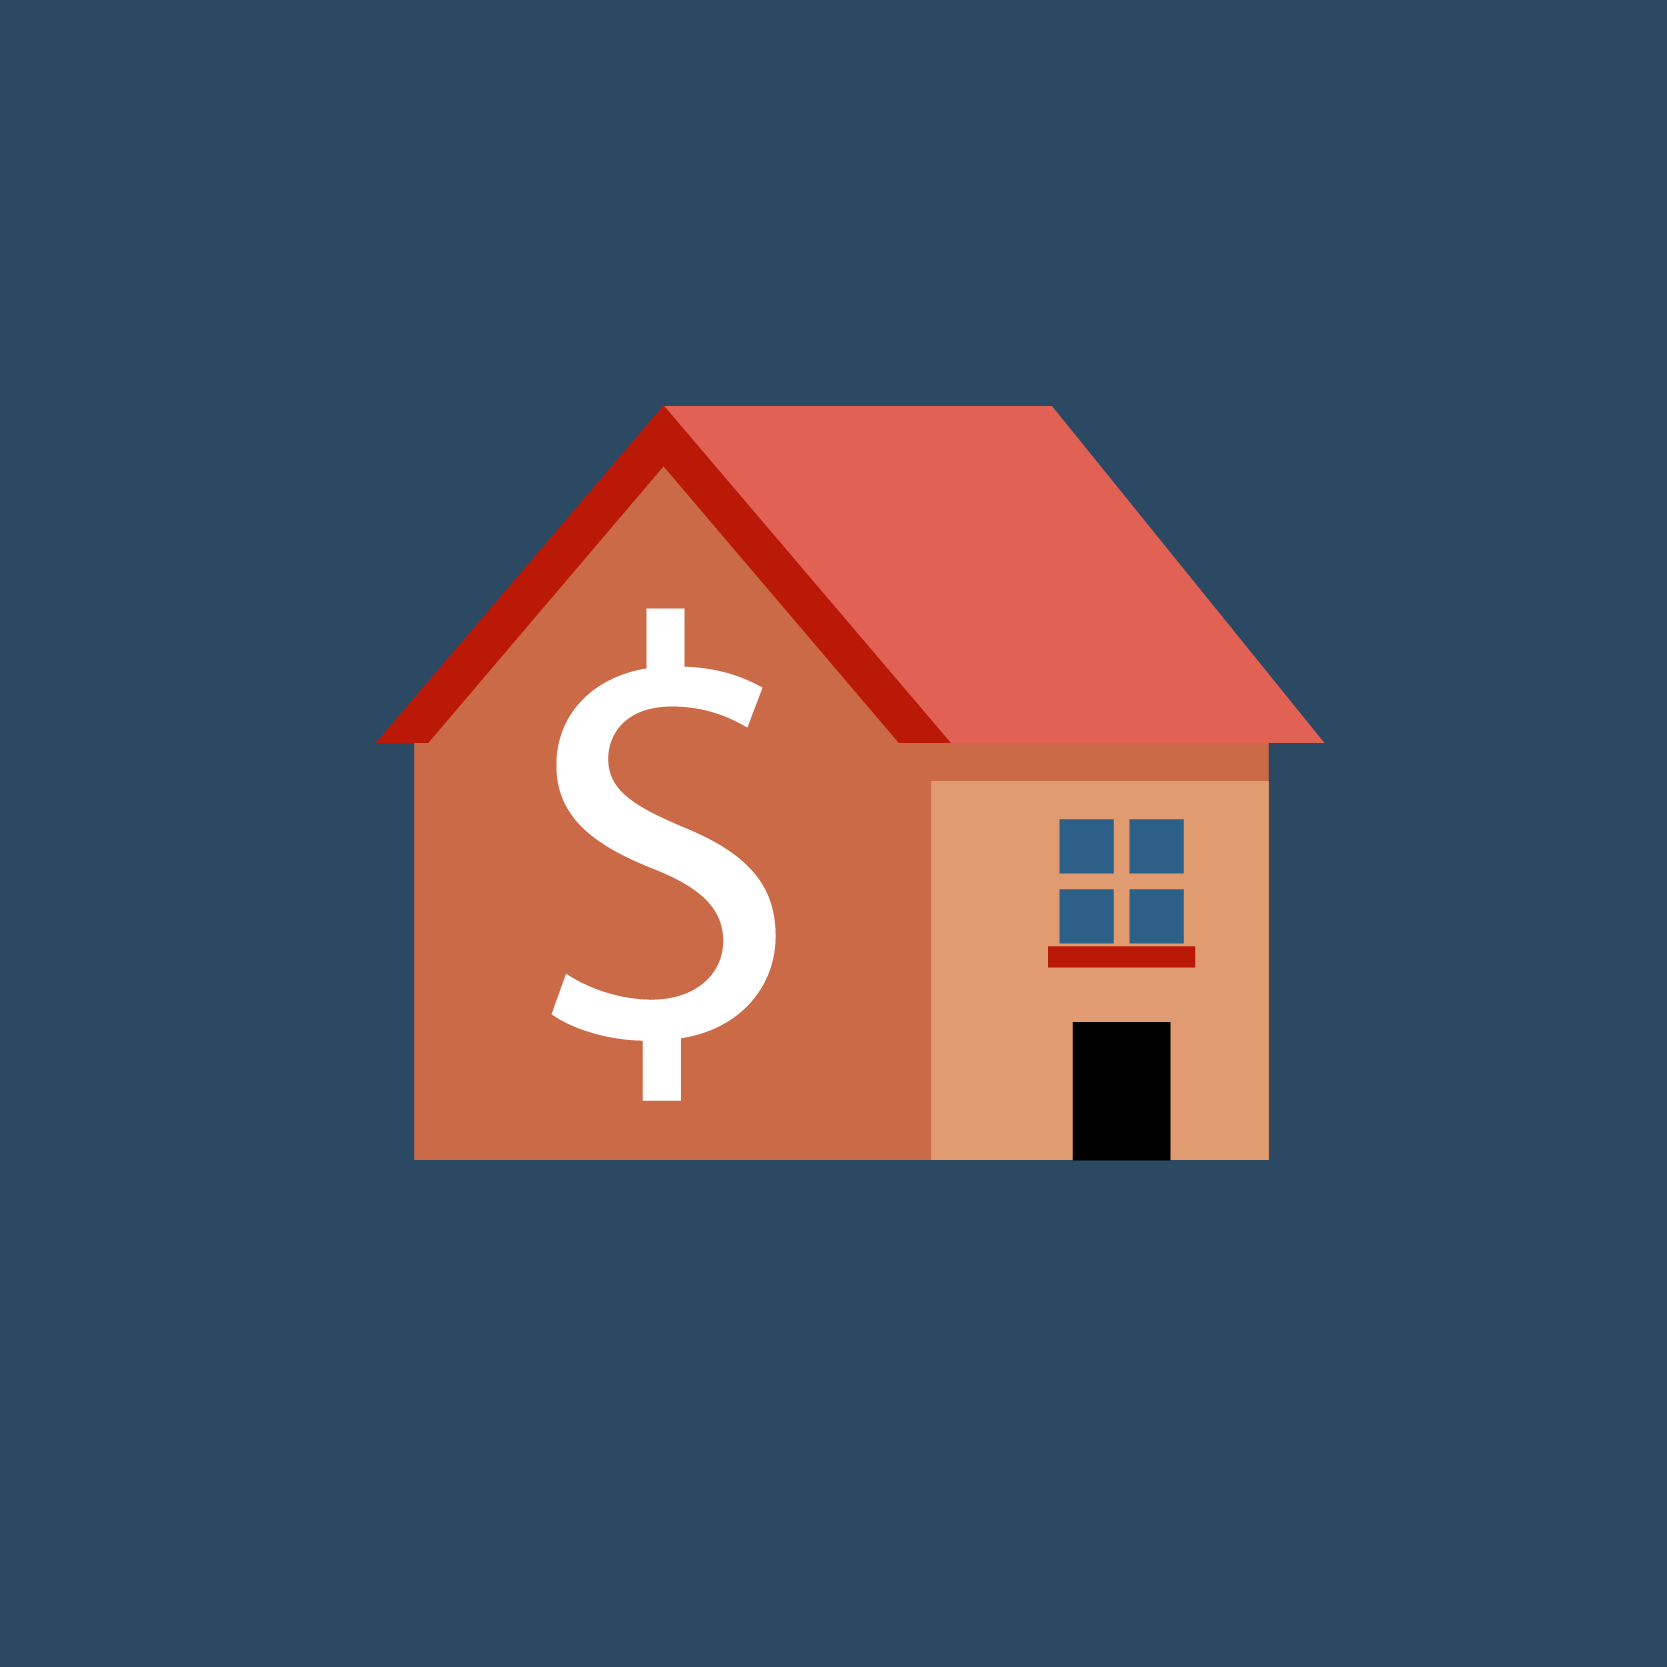 Develop financial assistance programs and loan products to assist residents in improving their homes